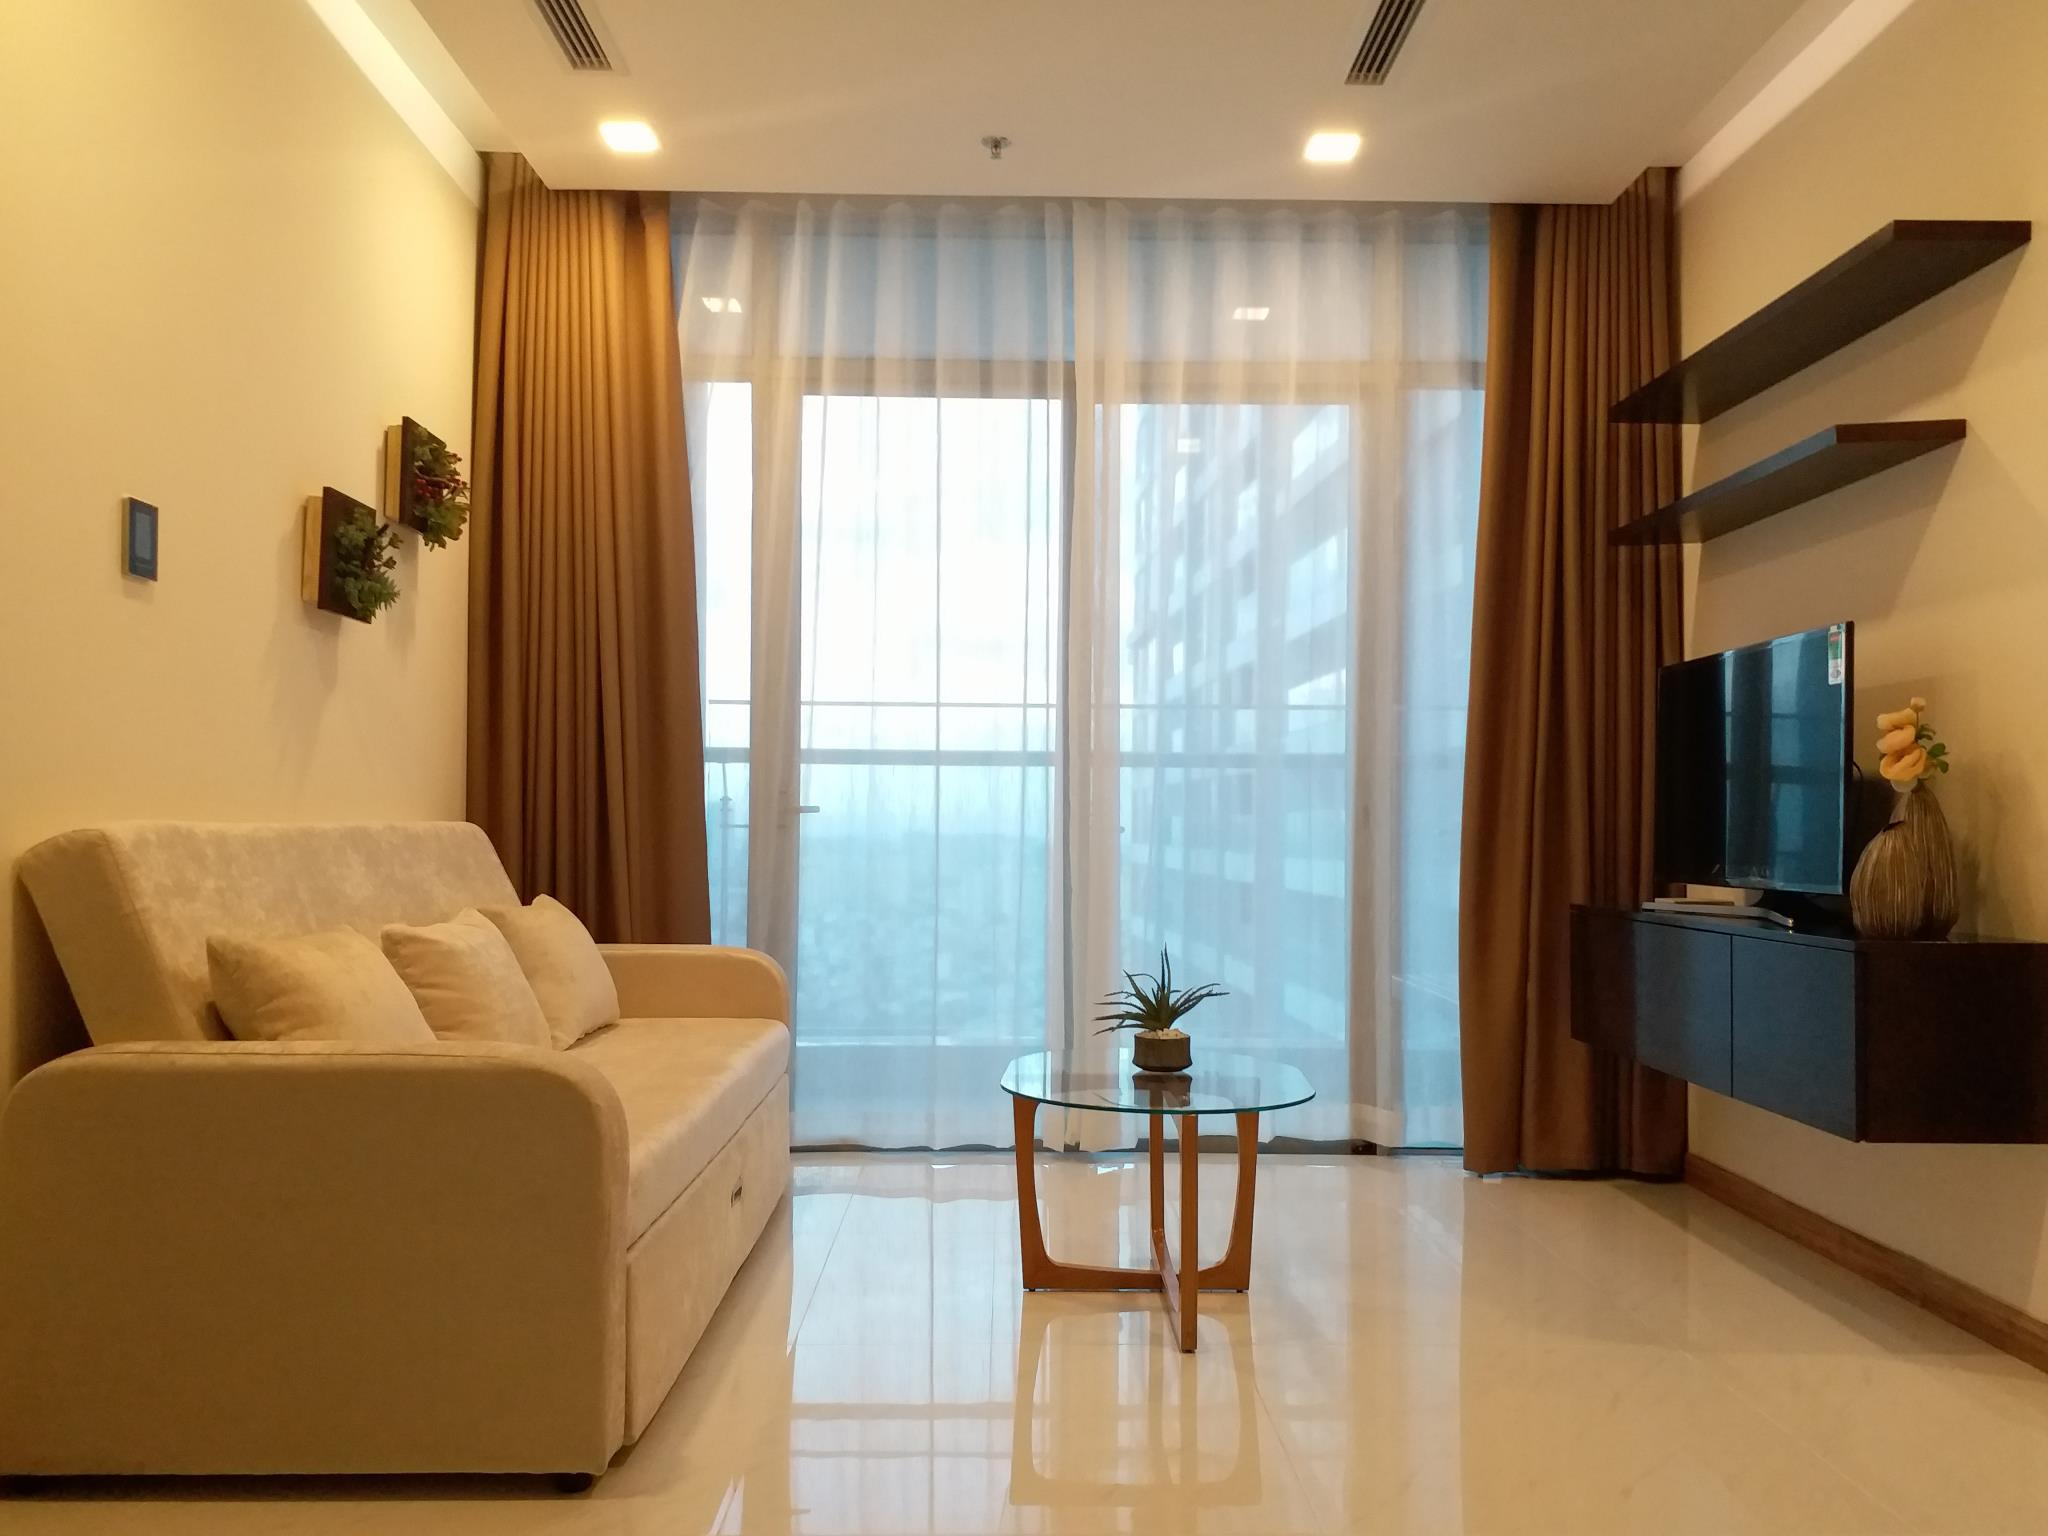 5 STAR-2BR nearby RIVER & PARK warmly welcome HOME